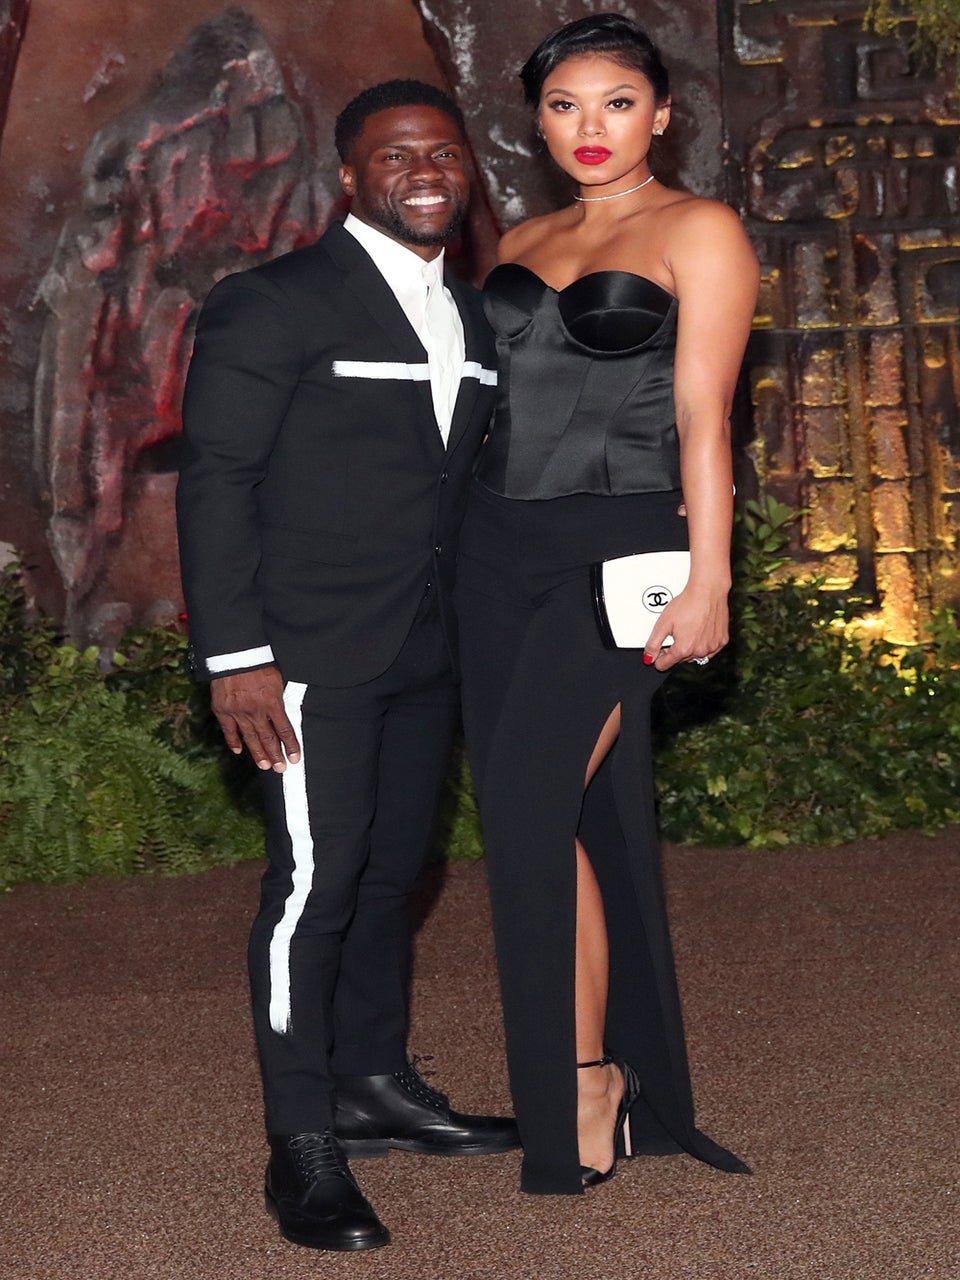 Kevin Hart And Wife Eniko Parrish Make First Red Carpet Appearance Since Welcoming Baby Son